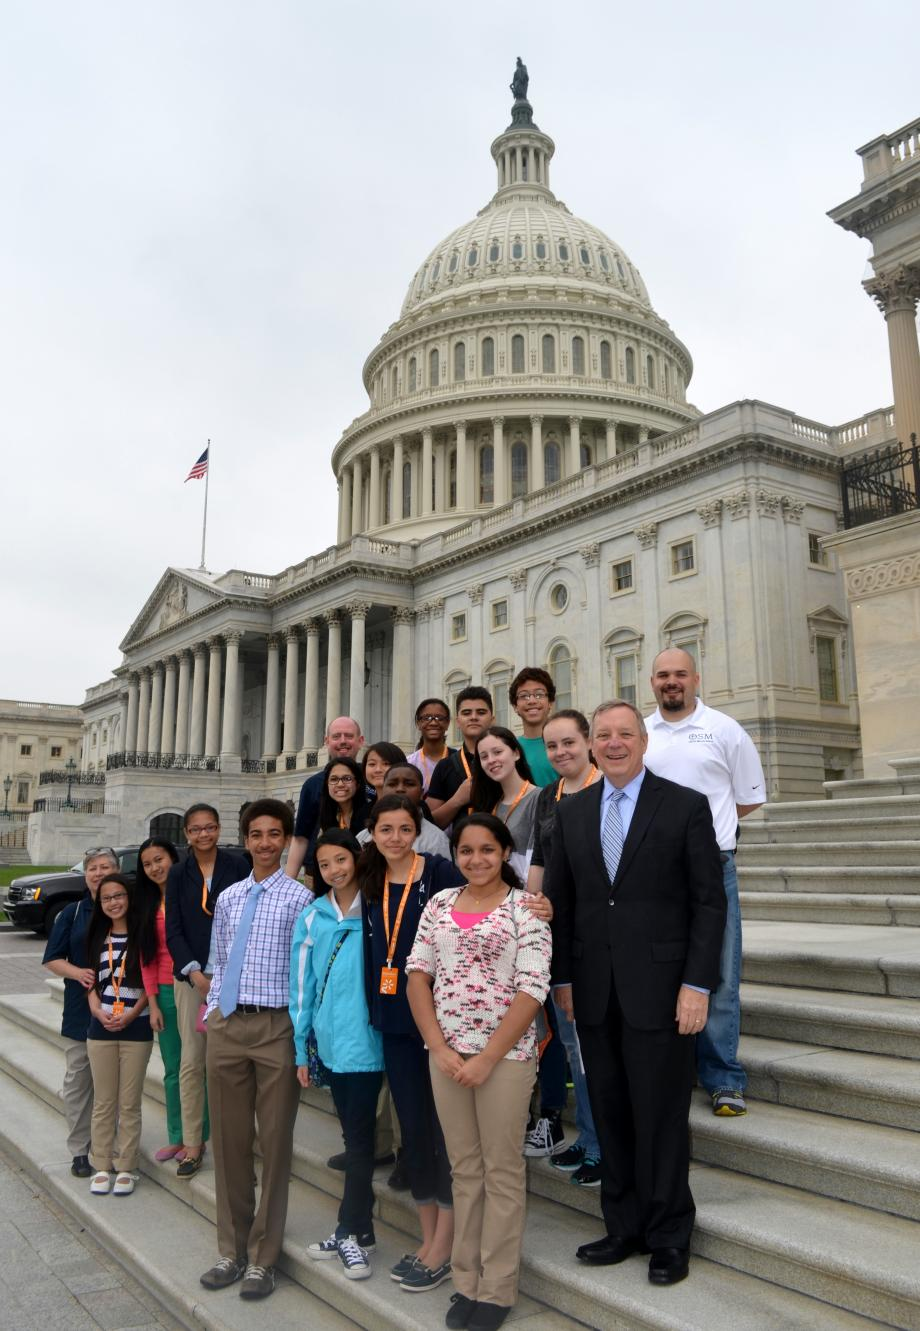 U.S. Senator Dick Durbin (D-IL) met with the Students at Old St. Mary's School in Chicago, Illinois who were in DC today on a school trip.